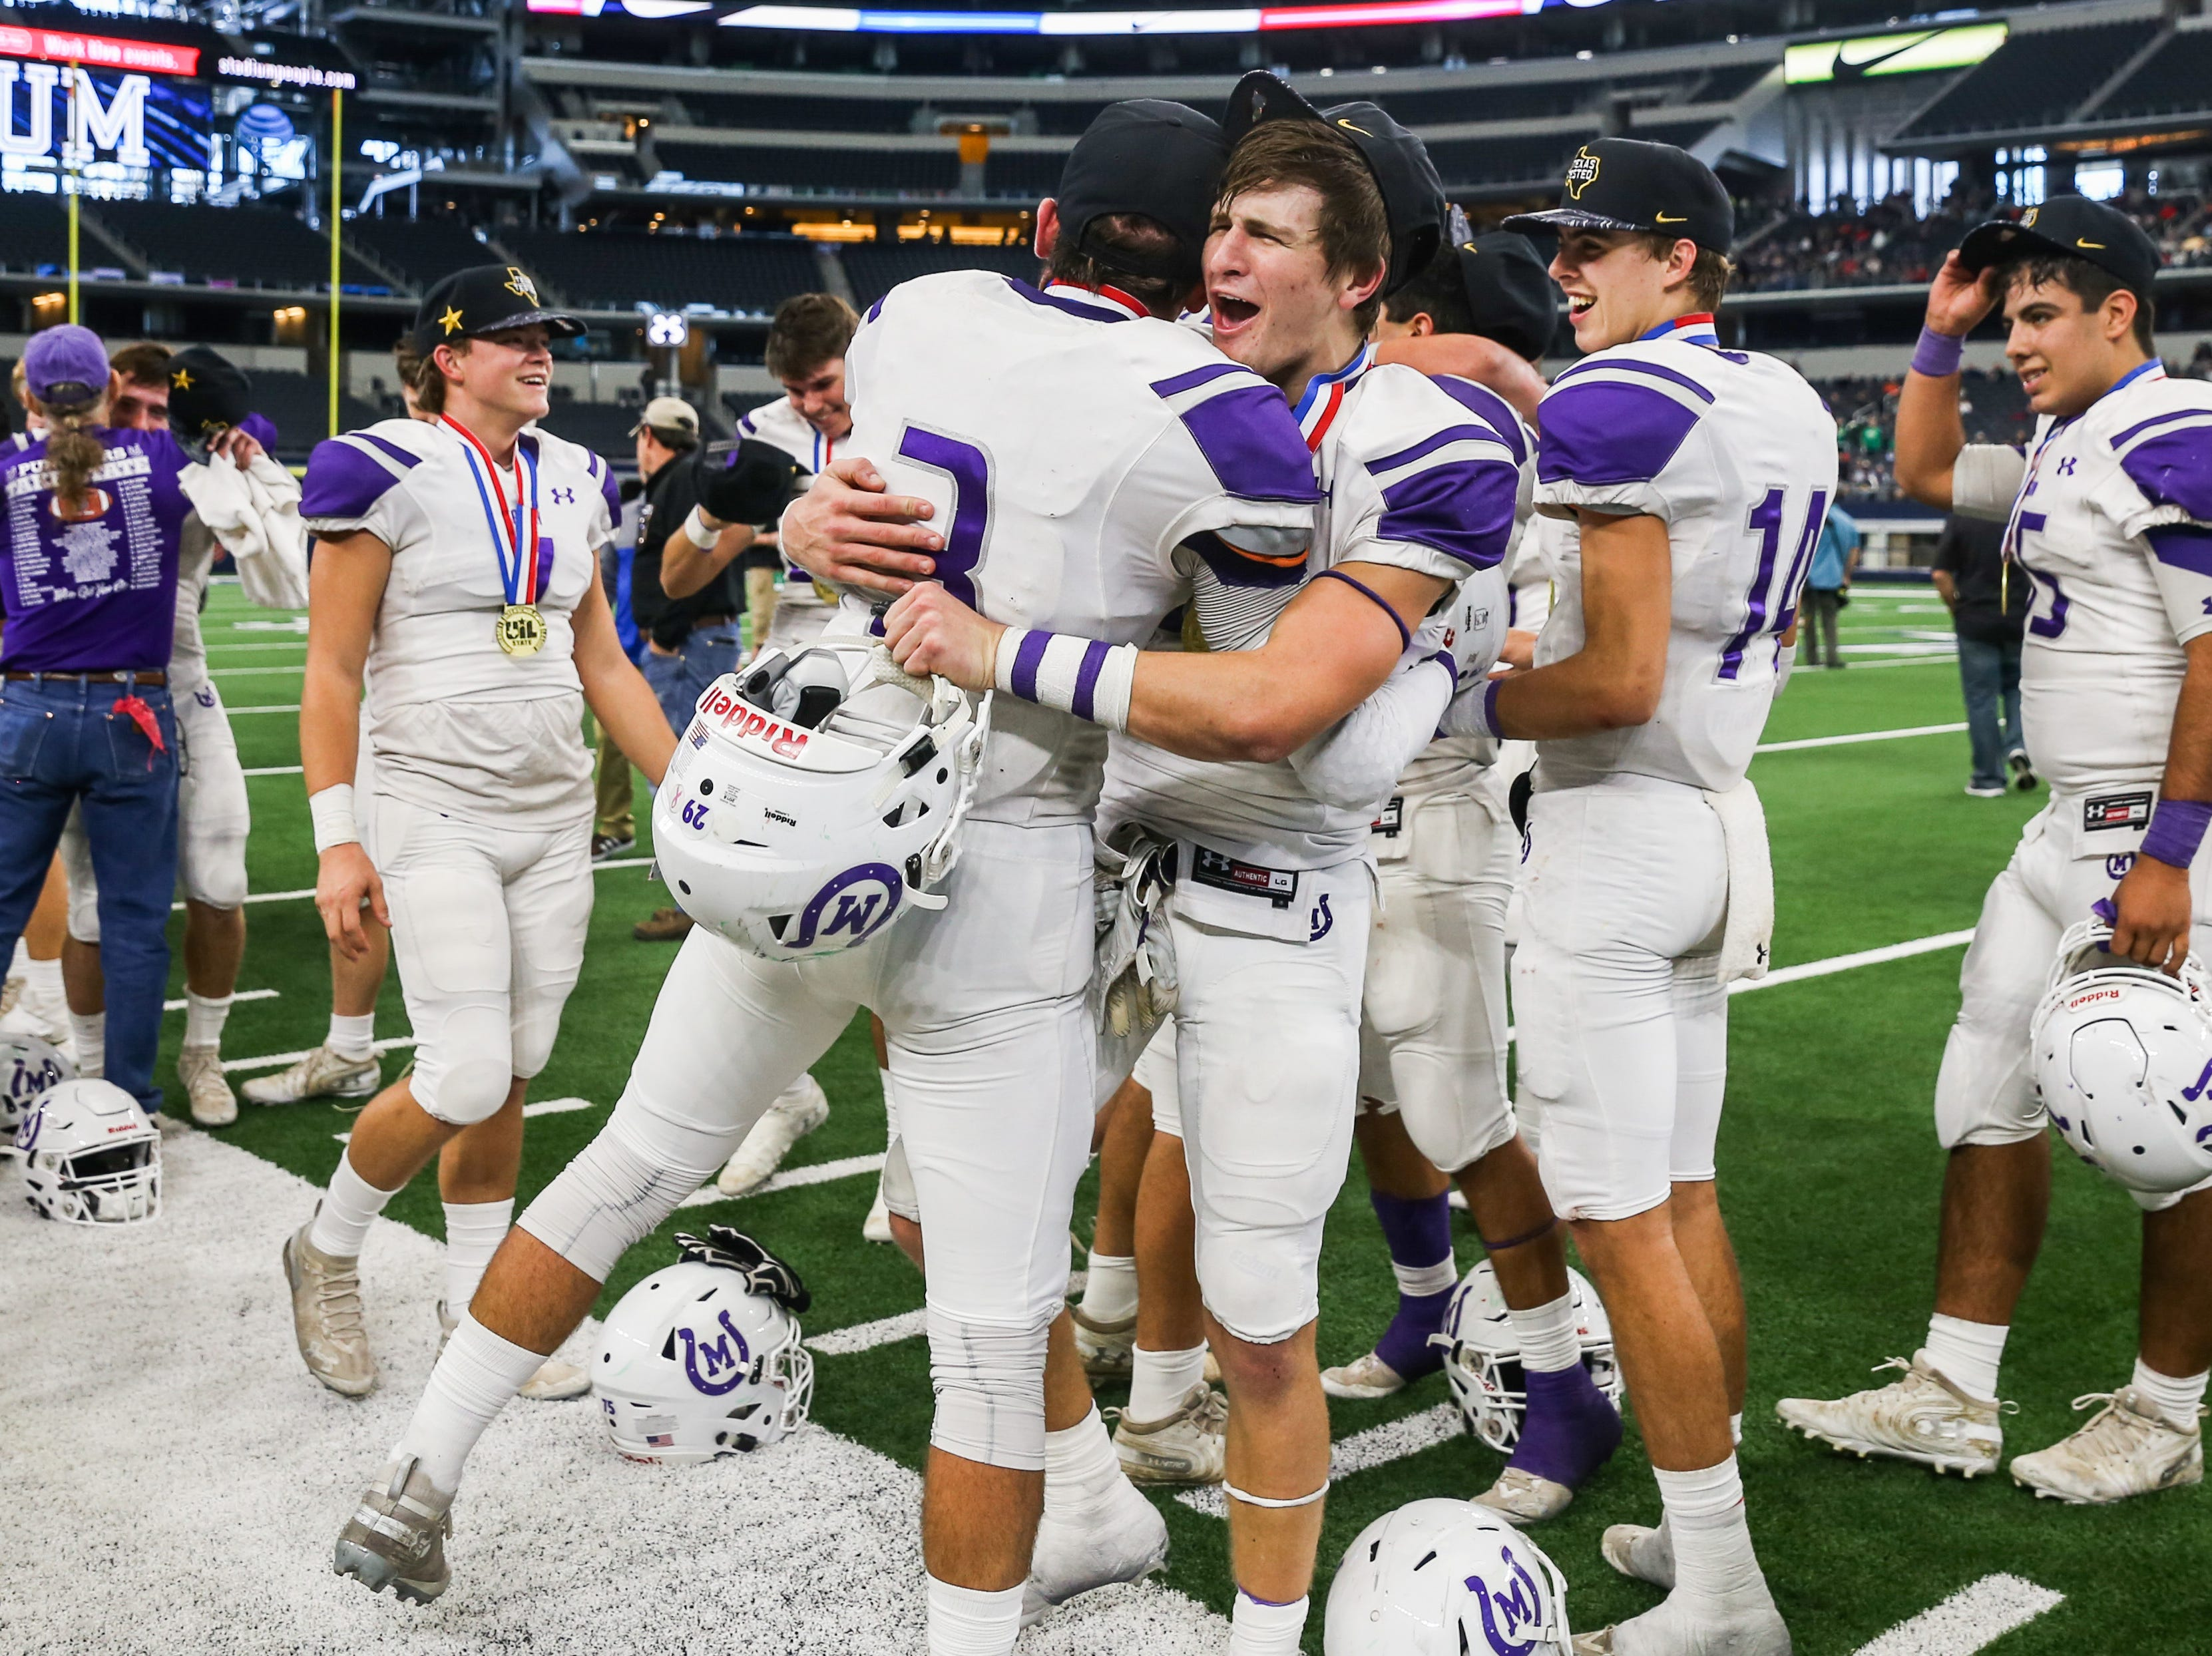 Mason players celebrate as they win the state finals game against New Deal Thursday, Dec. 20, at the AT&T Stadium.